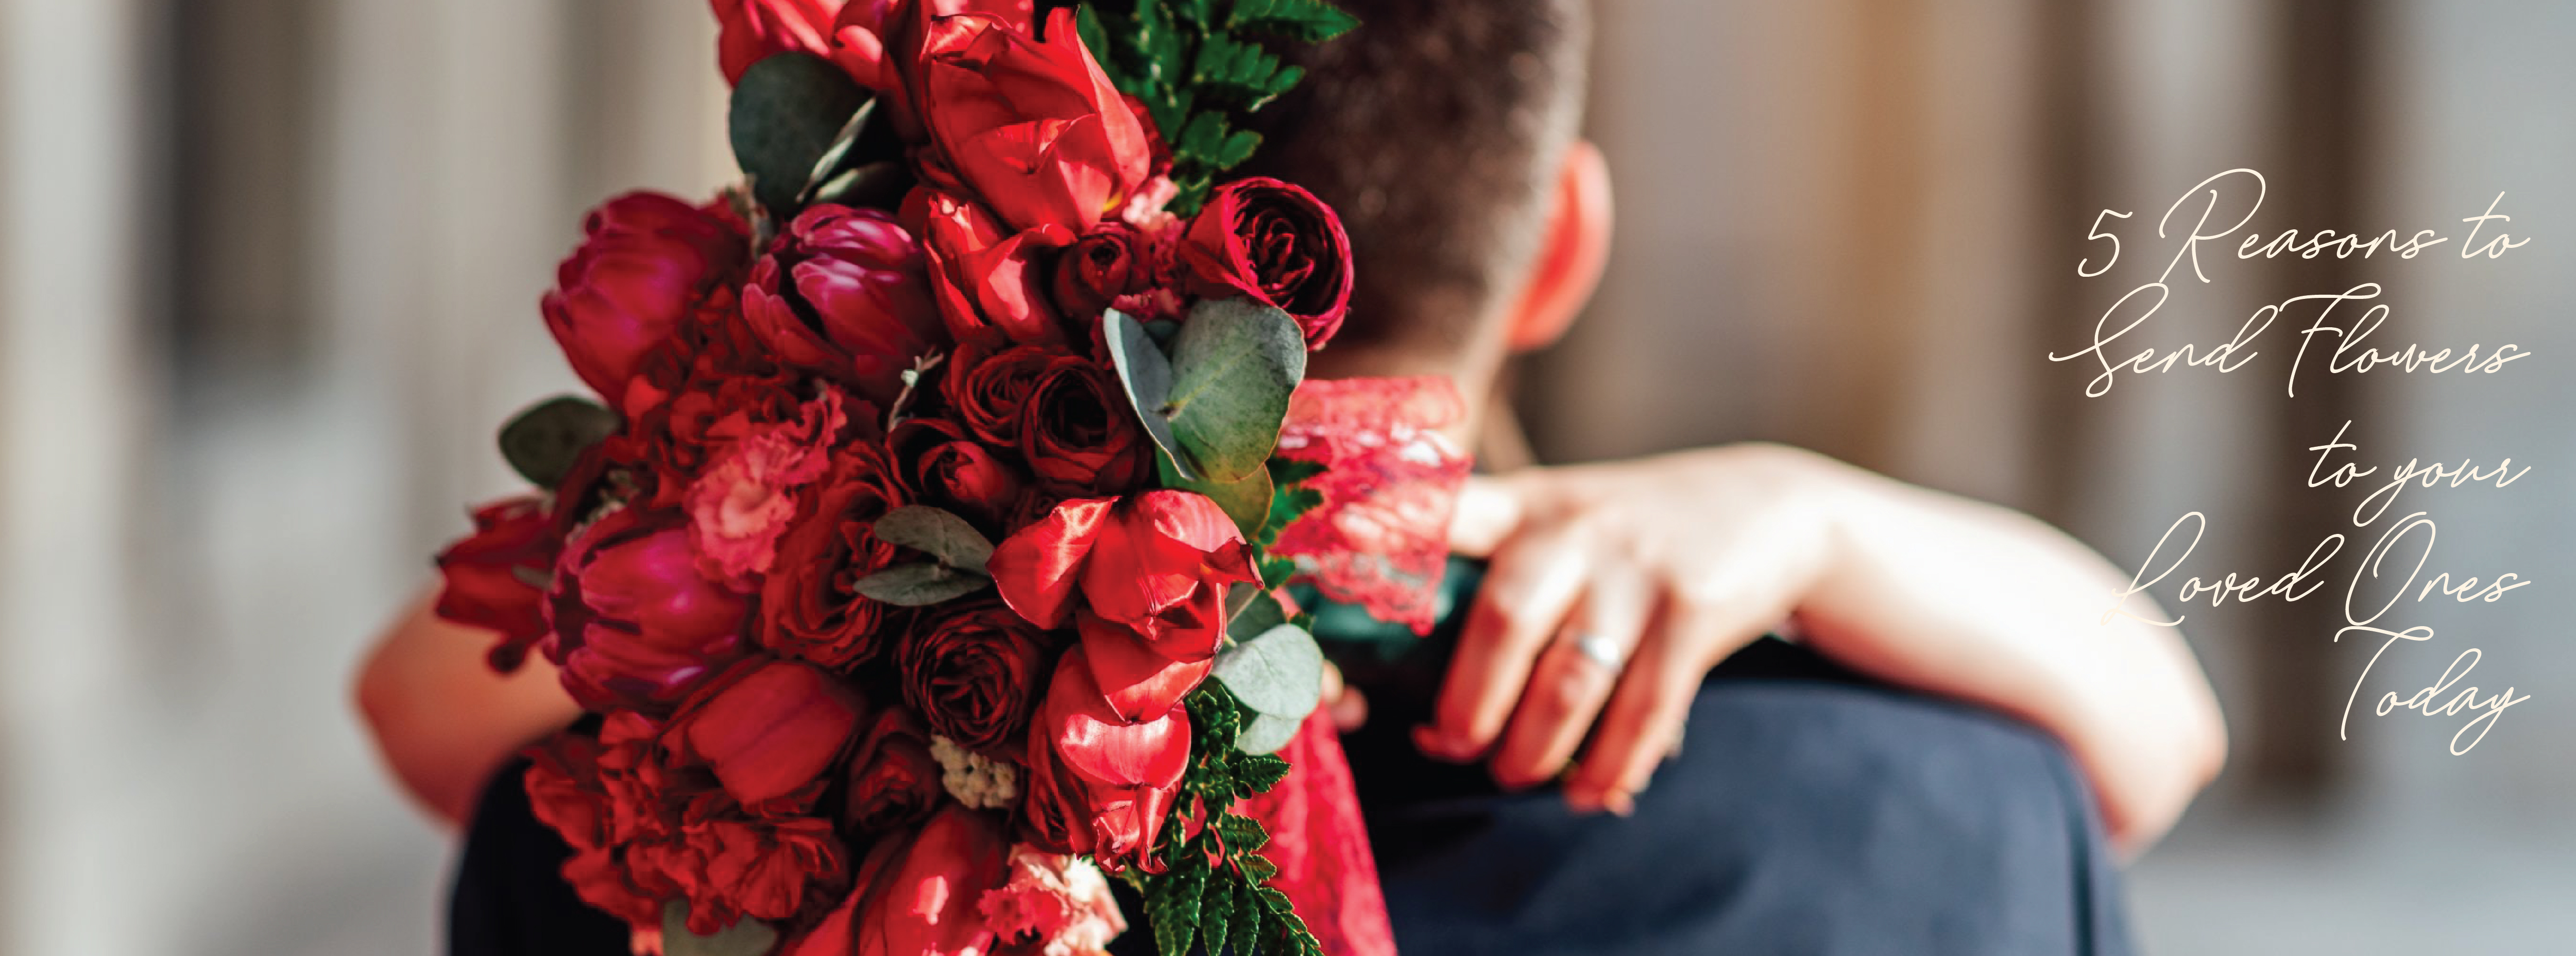 5 Reasons to Send Flowers to Your Loved Ones Today